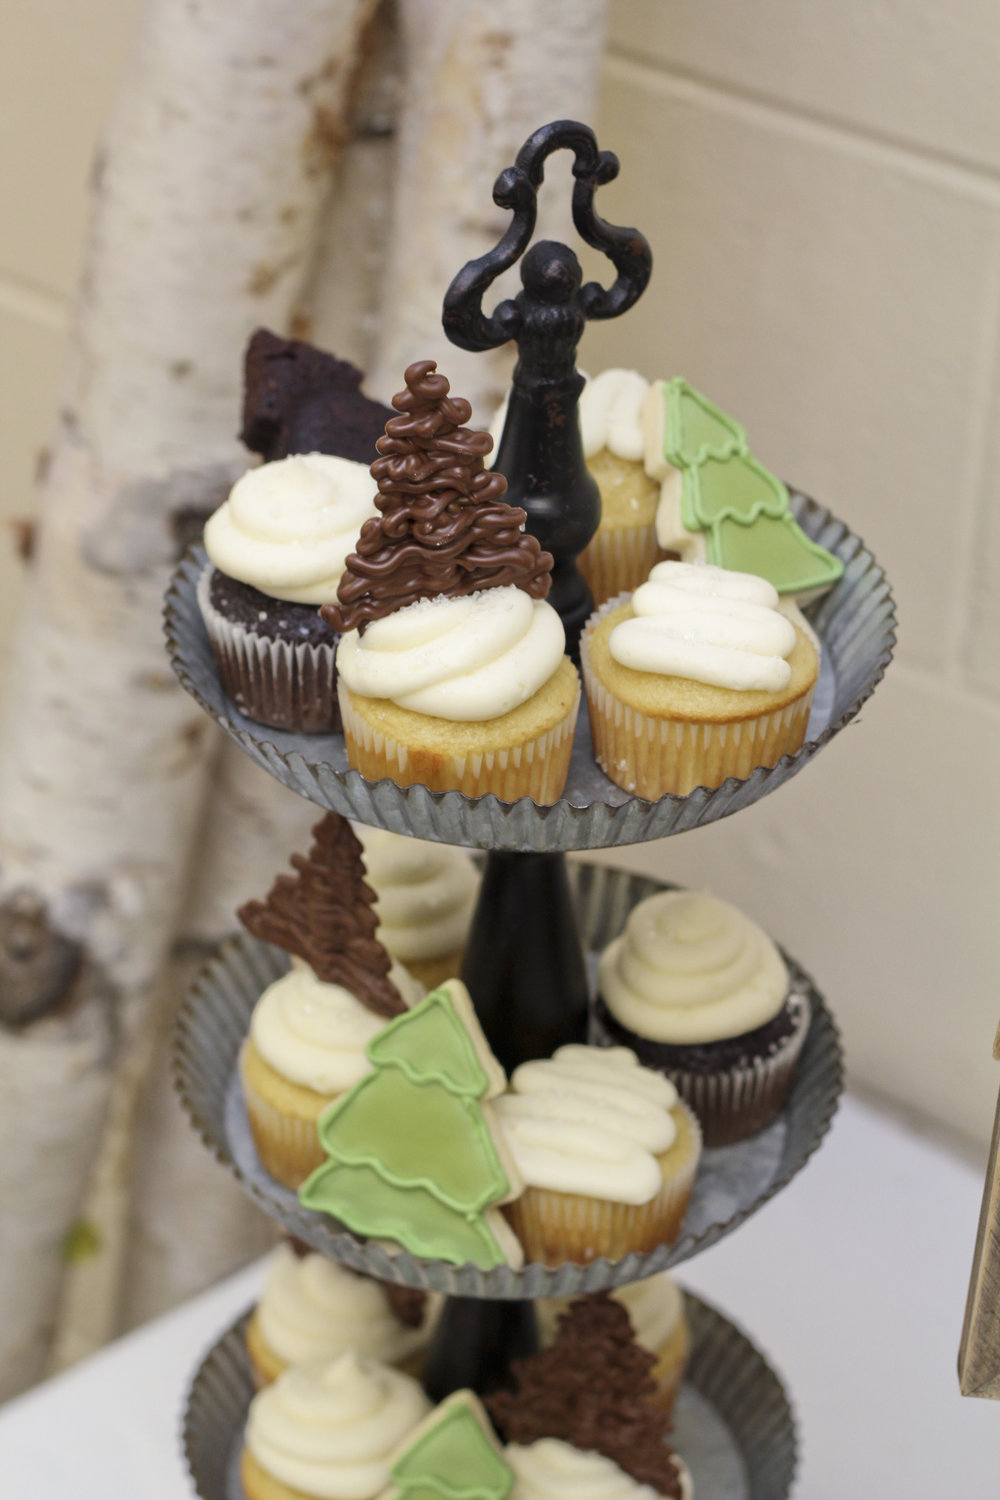 Lumberjack first birthday party cupcakes decorated with pine trees made out of melted chocolate. Pine tree shortbread cookies are the perfect compliment!